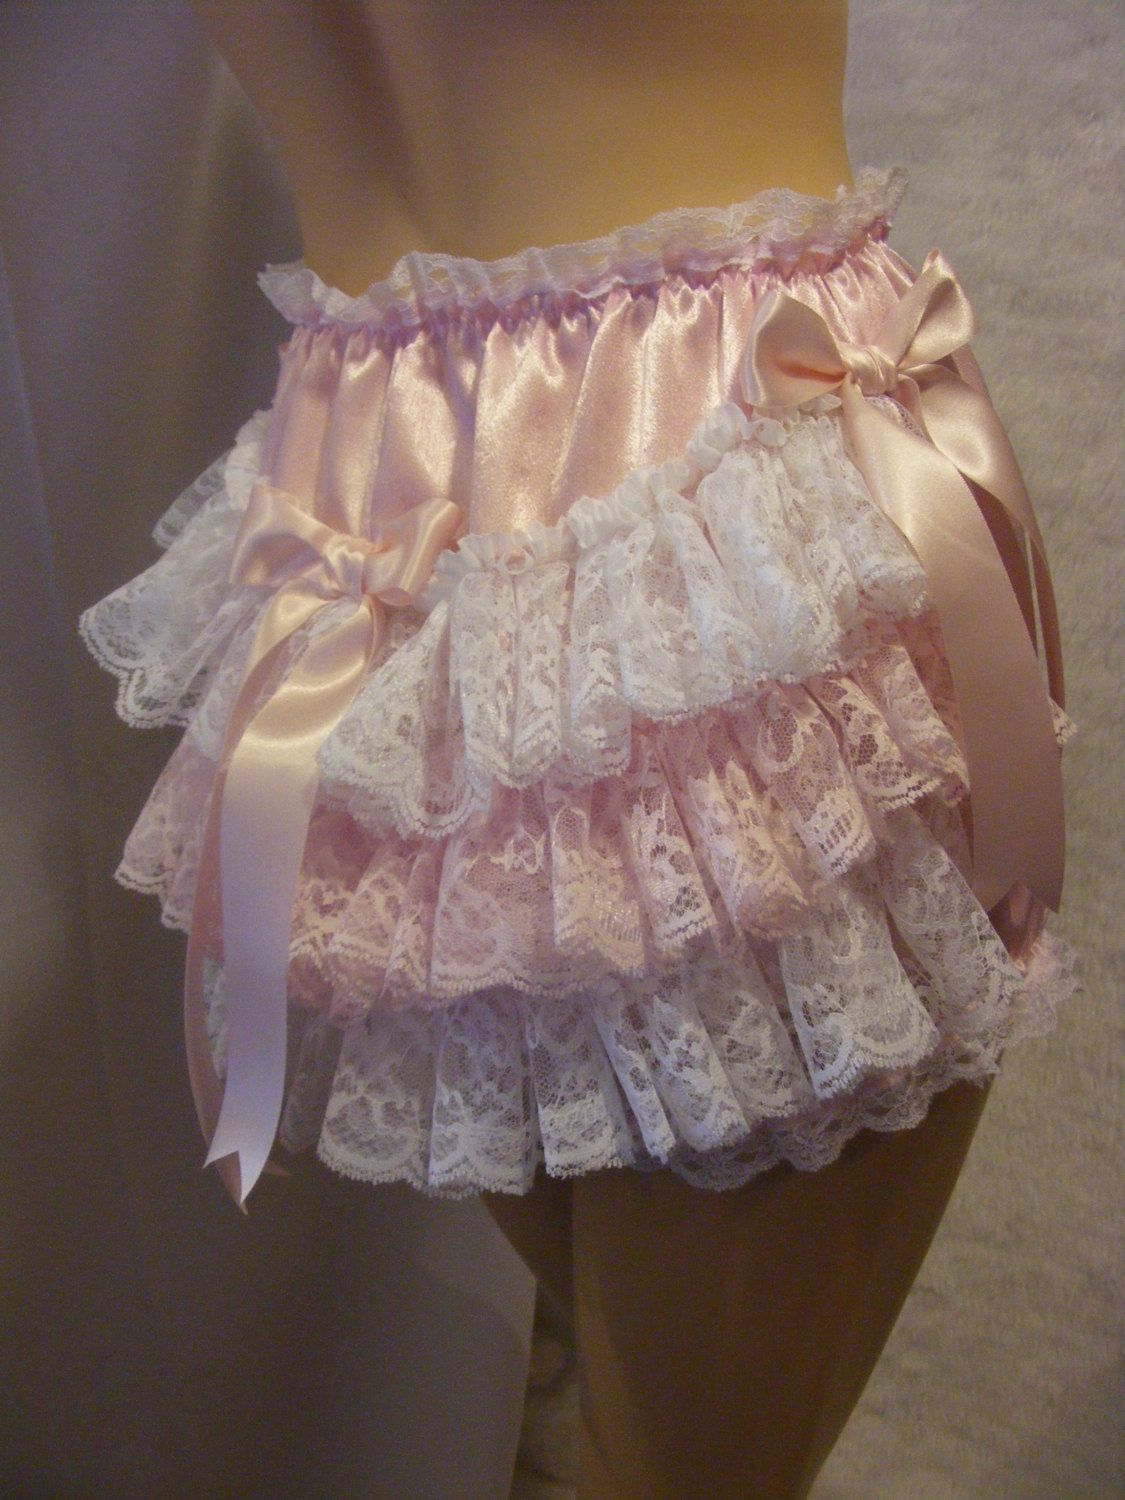 Frilly Sissy Tumblr for sissy adult baby pink satin and lace panties, knickers, diaper